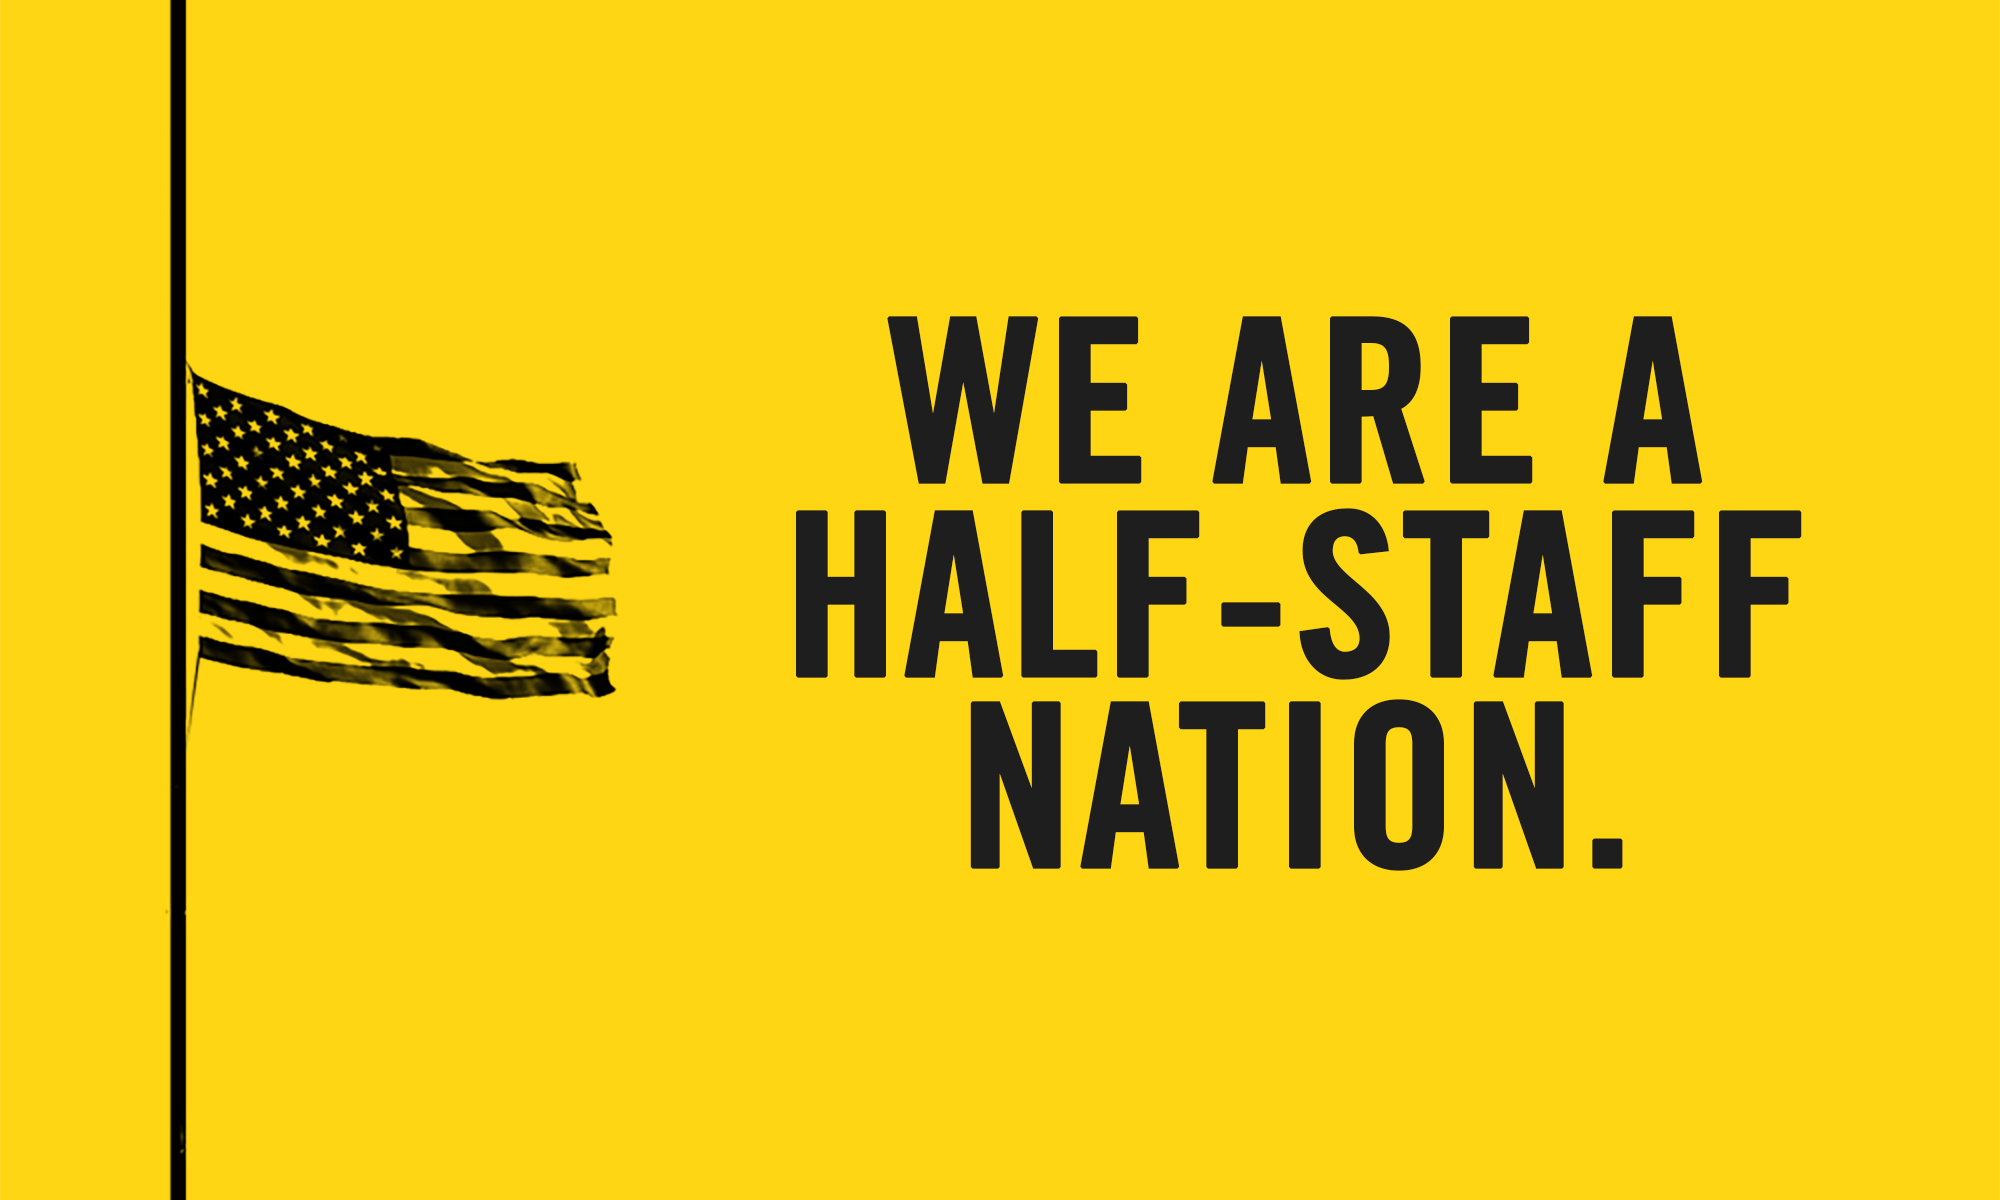 We are a Half-Staff Nation